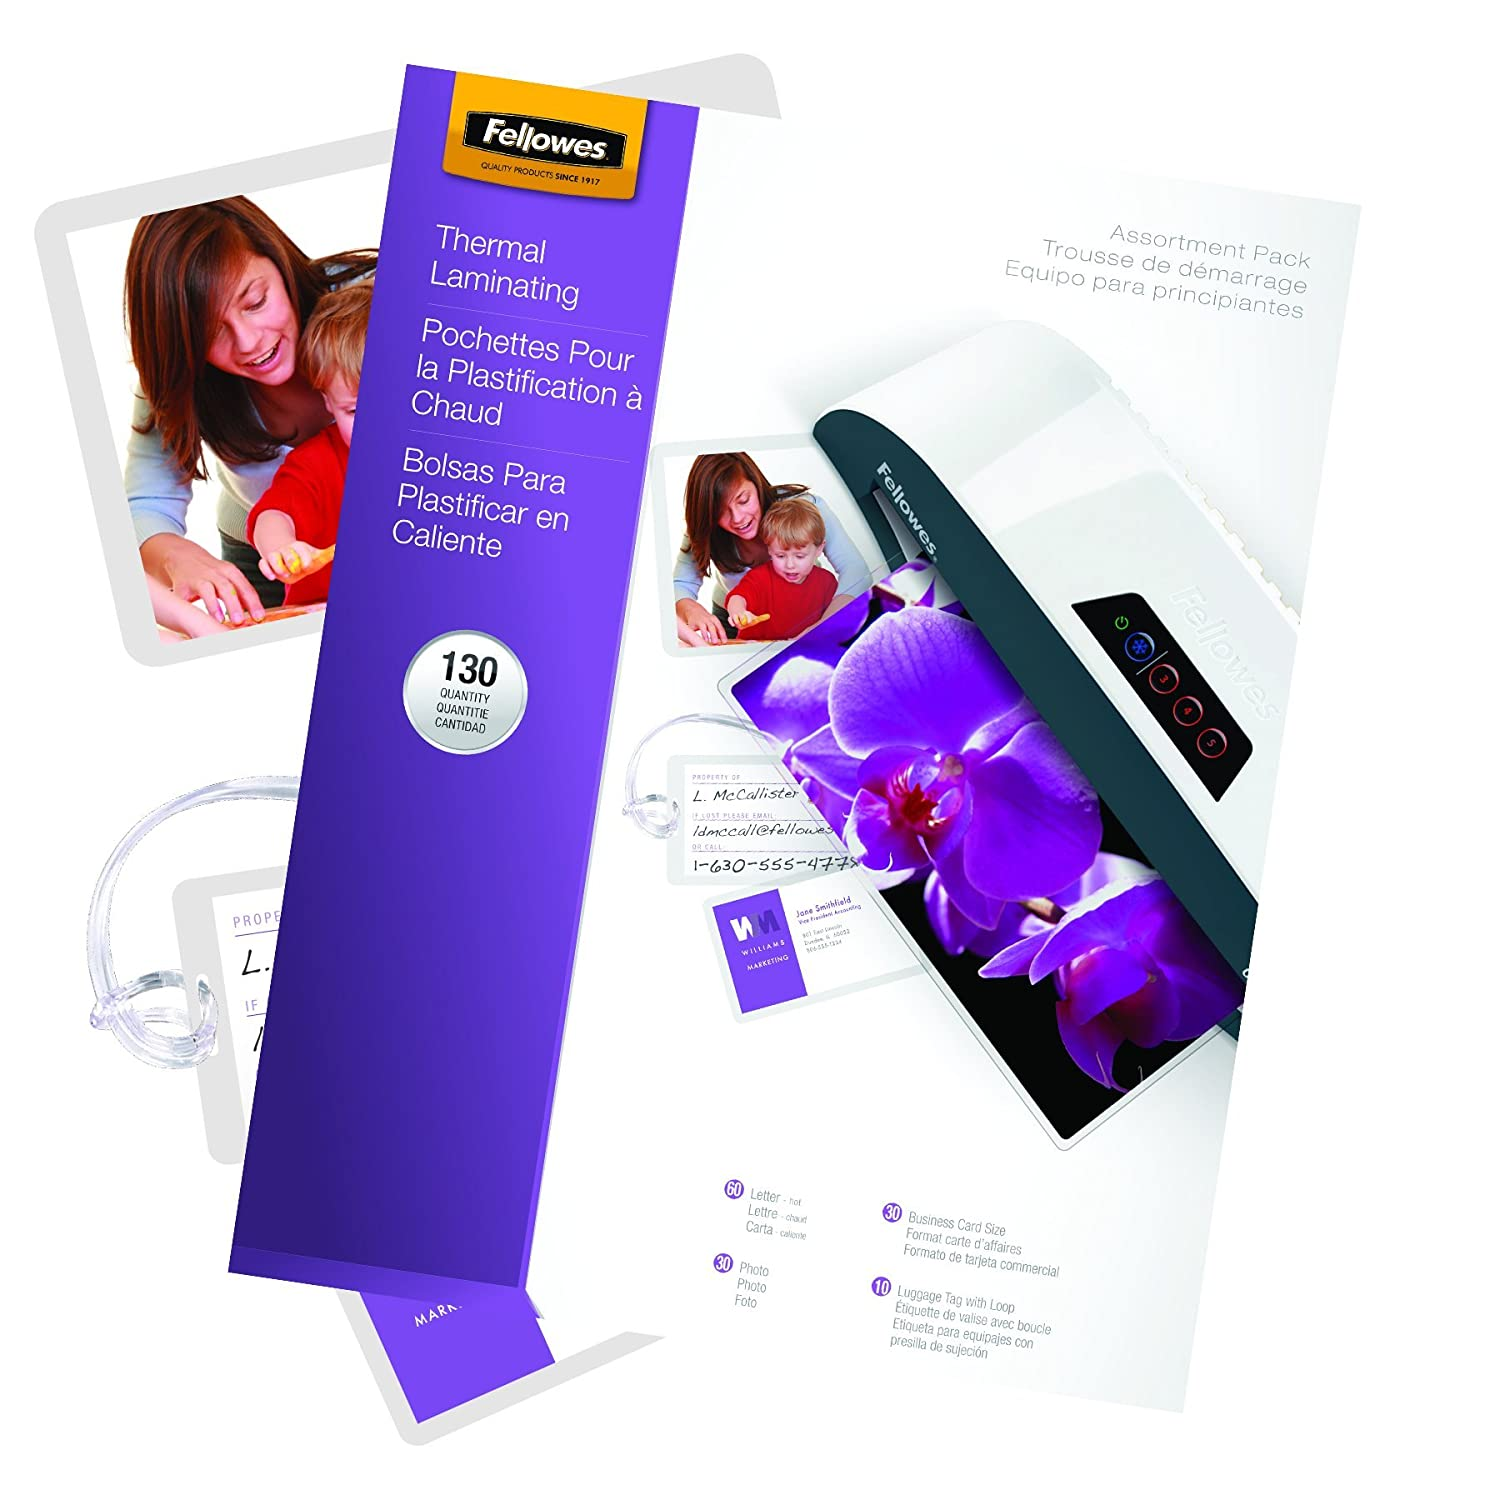 fellowes laminating pouch thermal starter kit 130